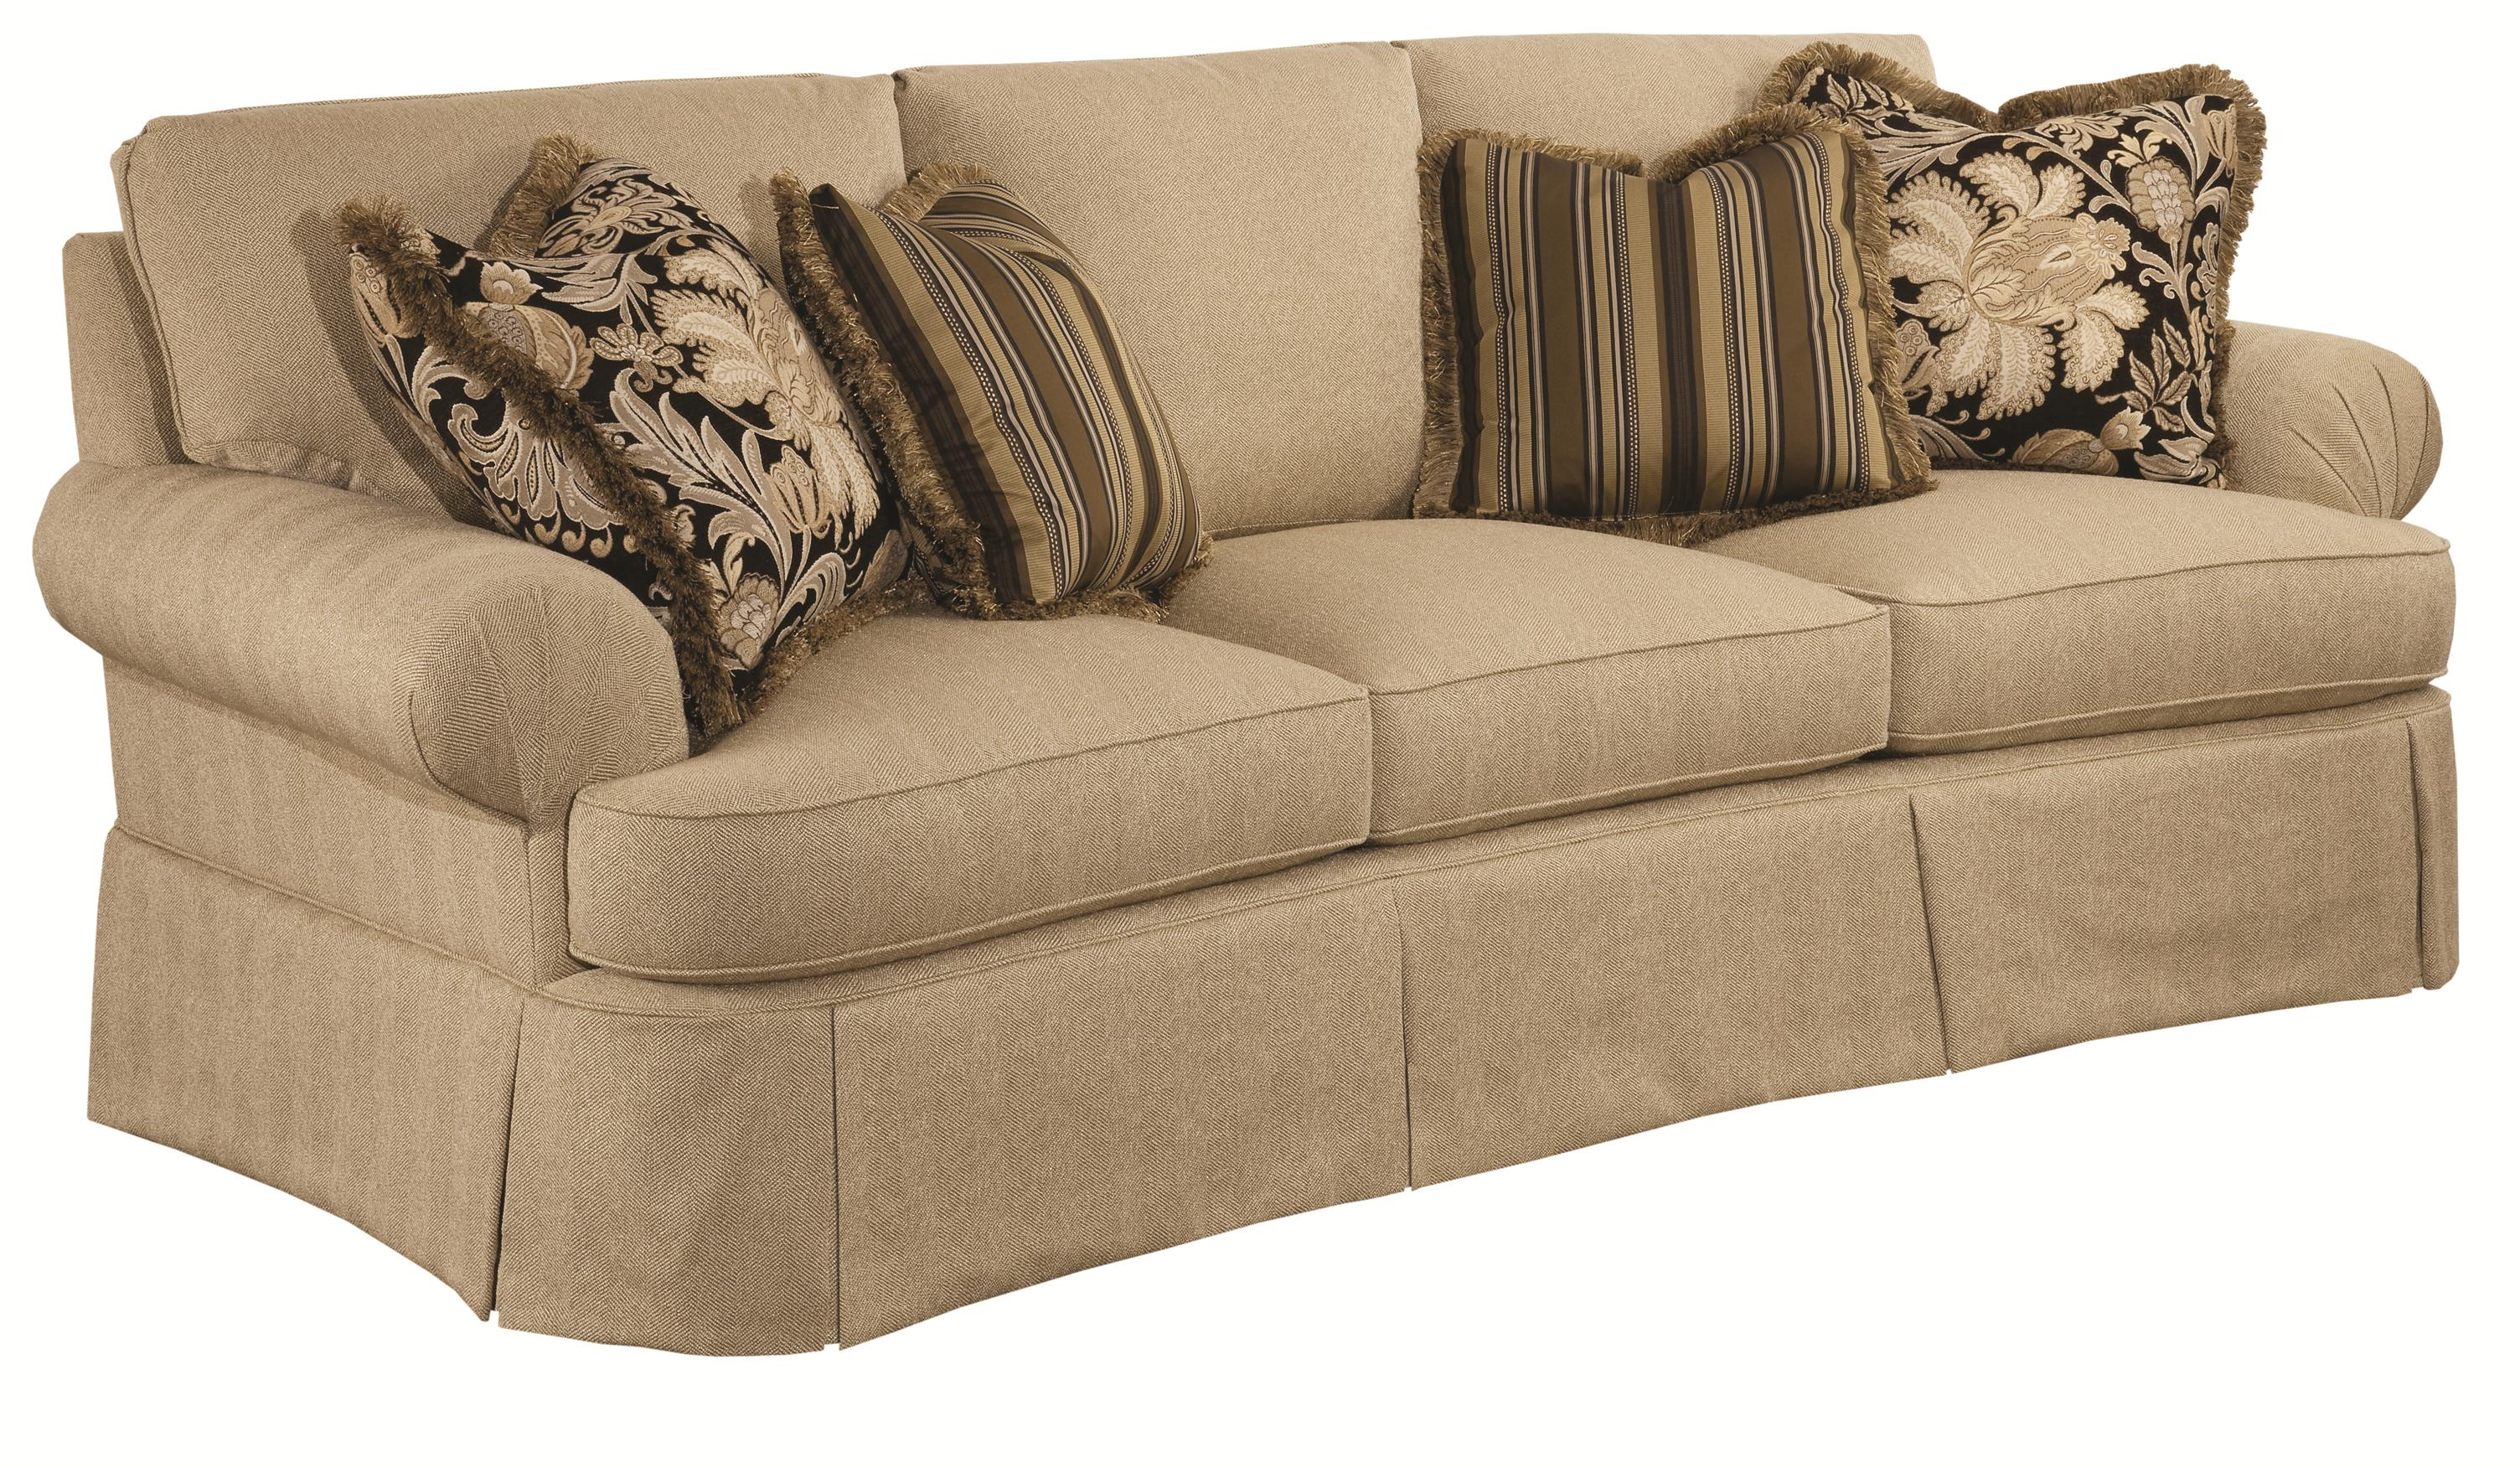 Kincaid Furniture Danbury Traditional Conversation Sofa